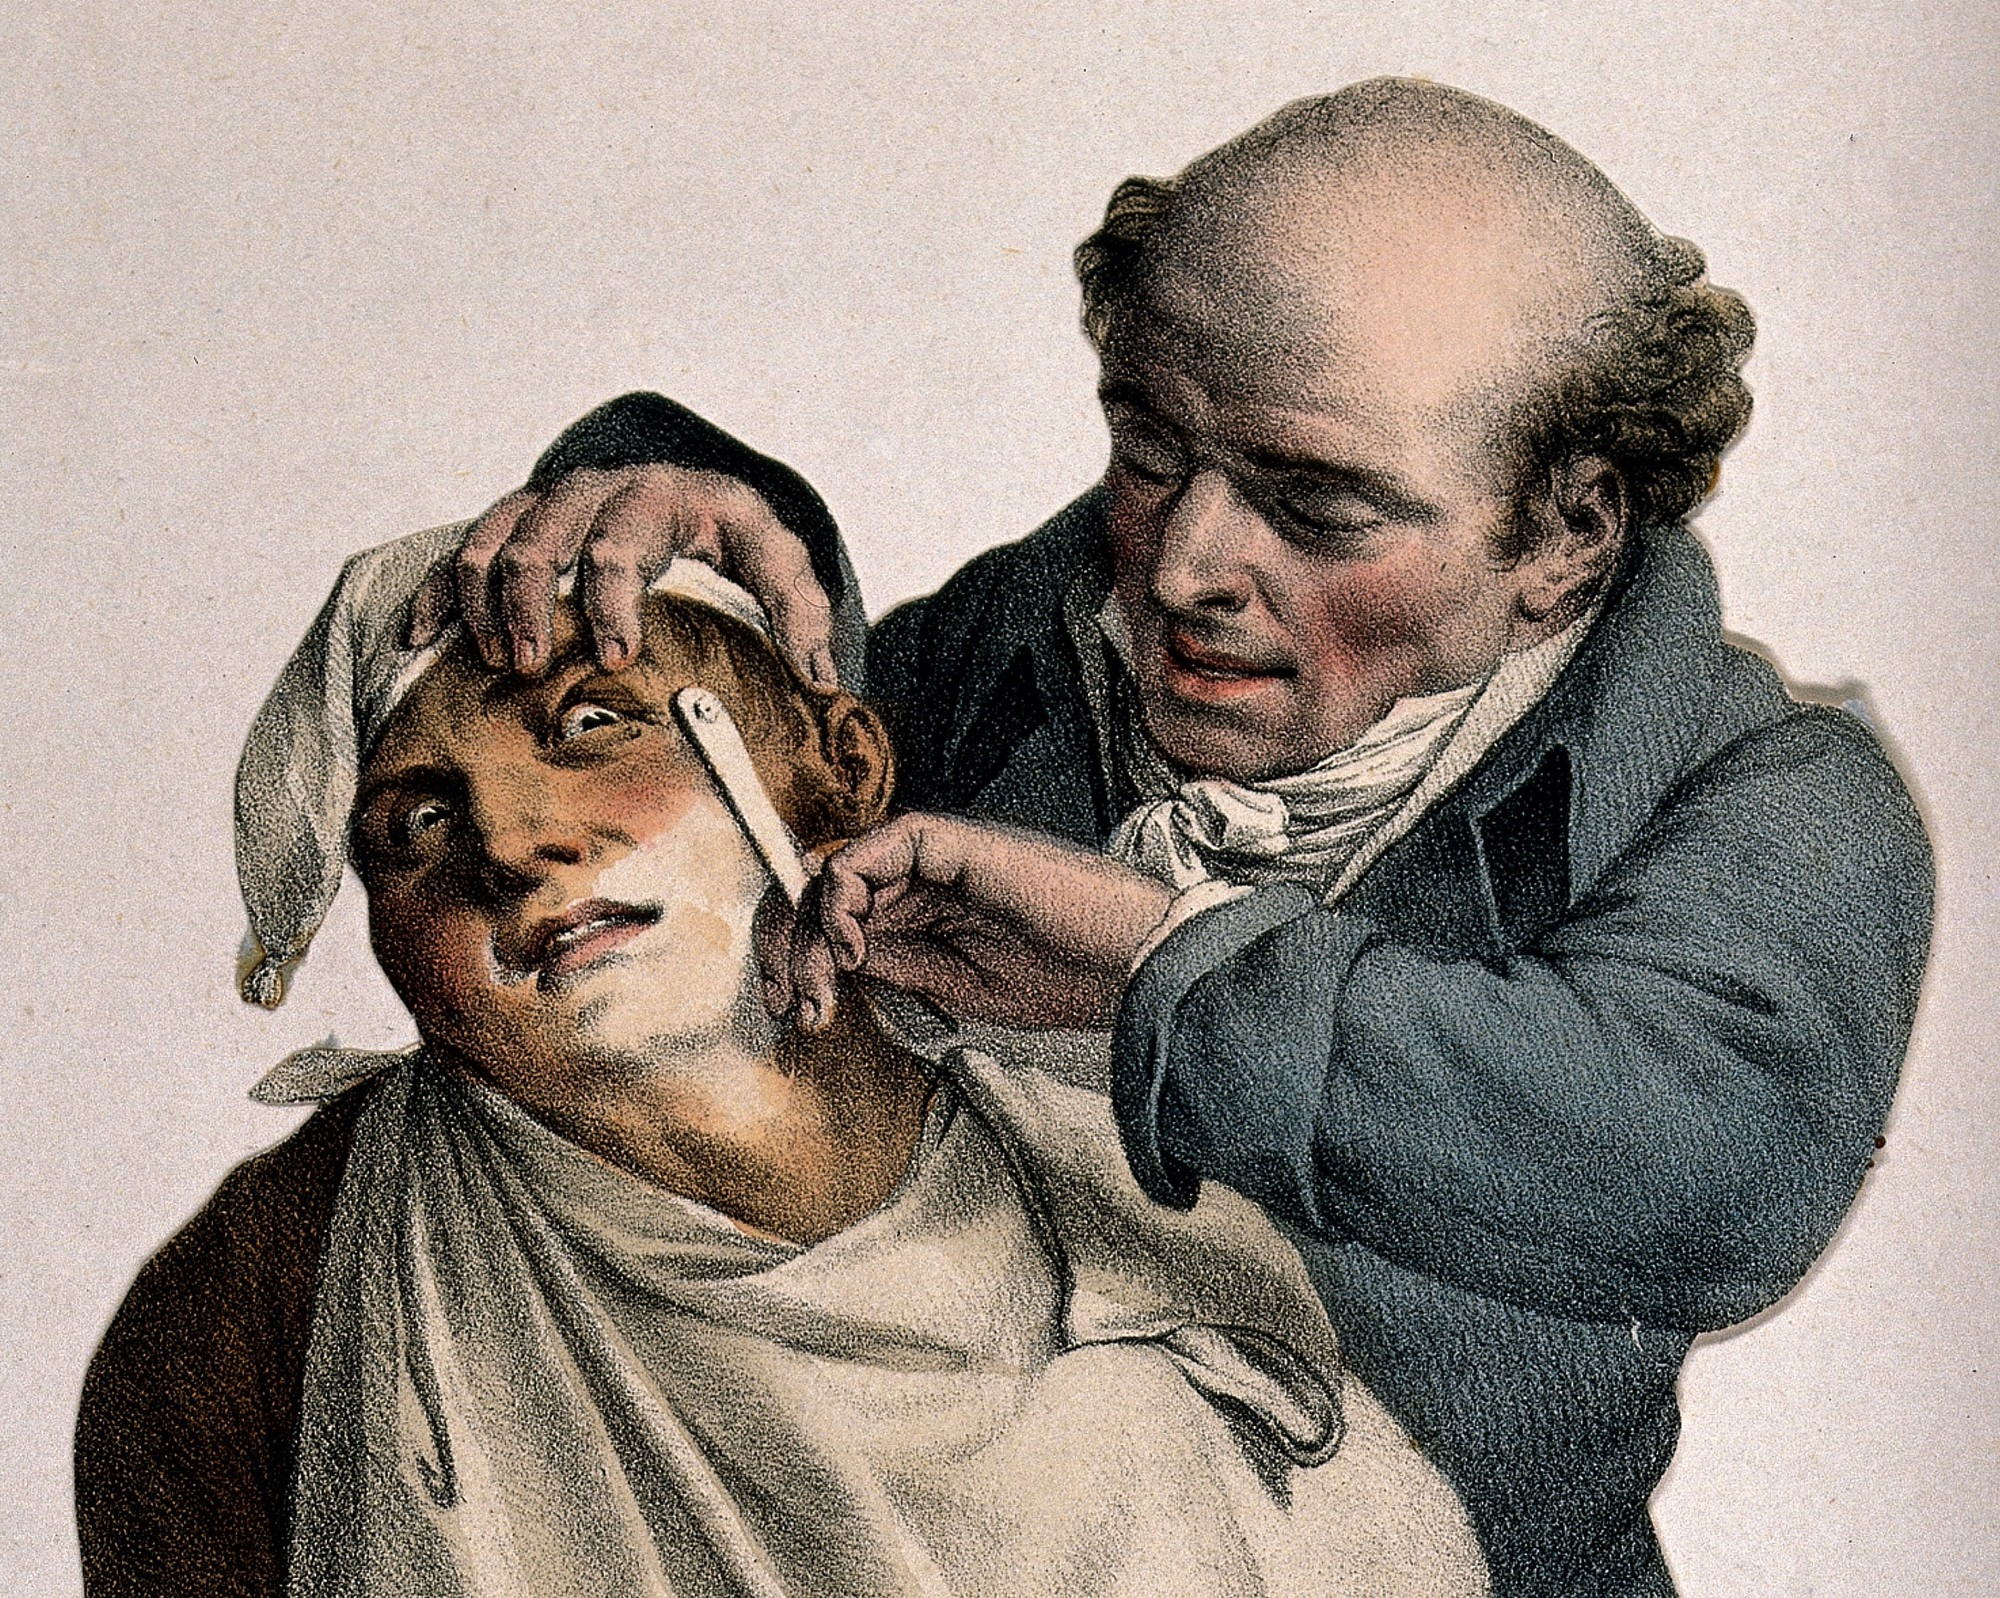 A barber shaving a man who looks extremely fearful.